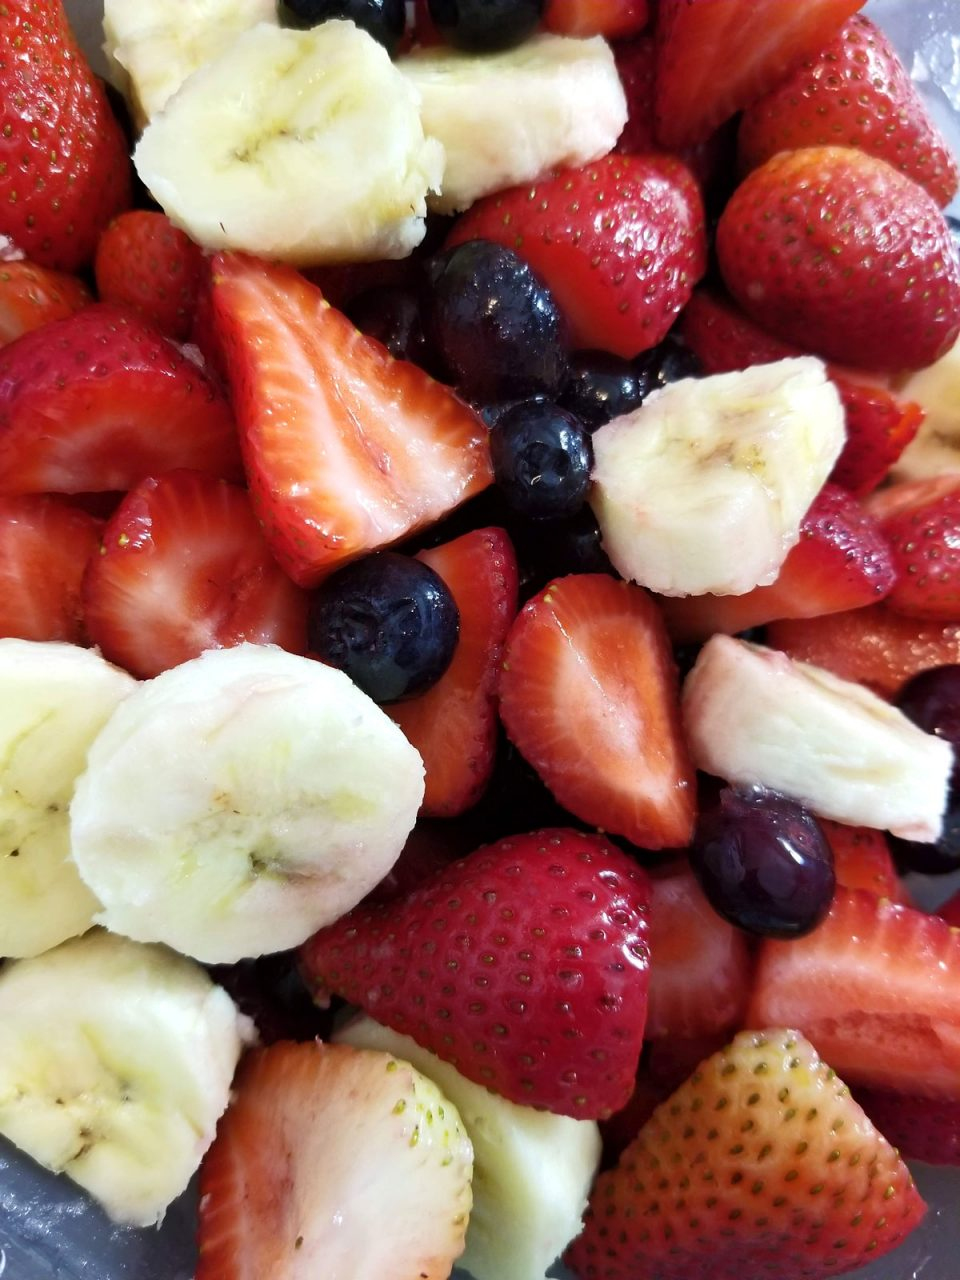 berry banana fruit salad with strawberries, blueberries and bananas